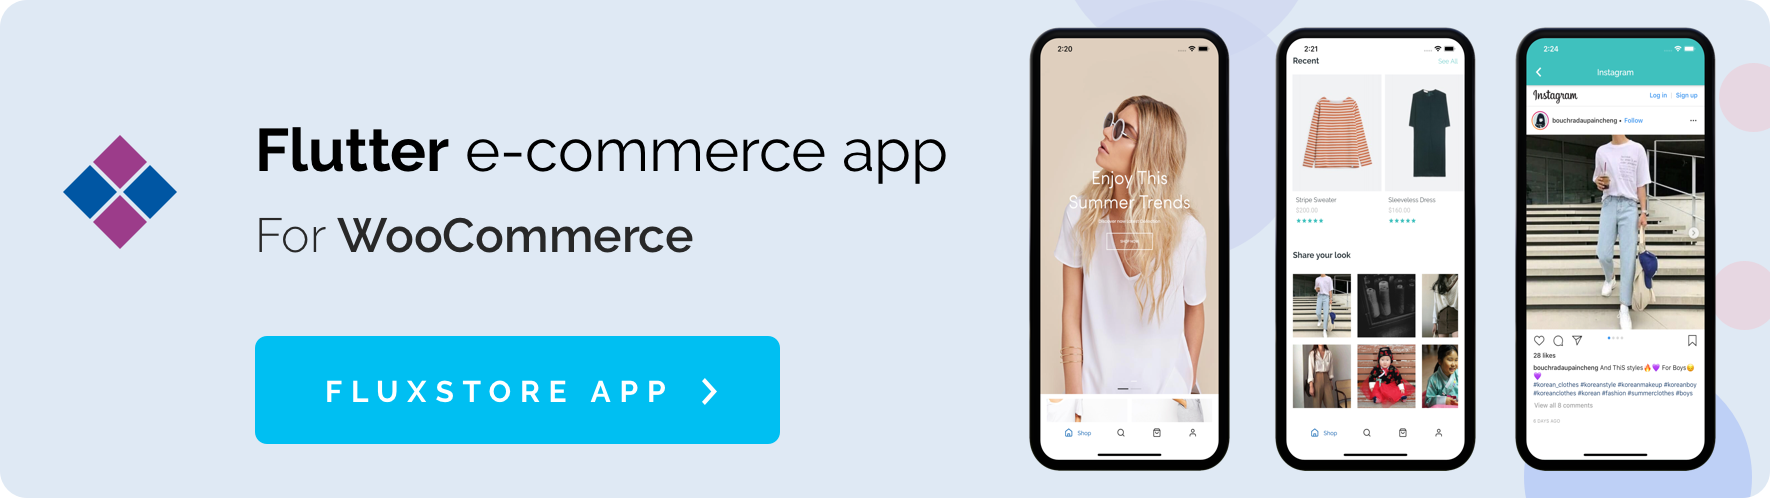 FluxStore Manager - Flutter Vendor App for Woocommerce - 10